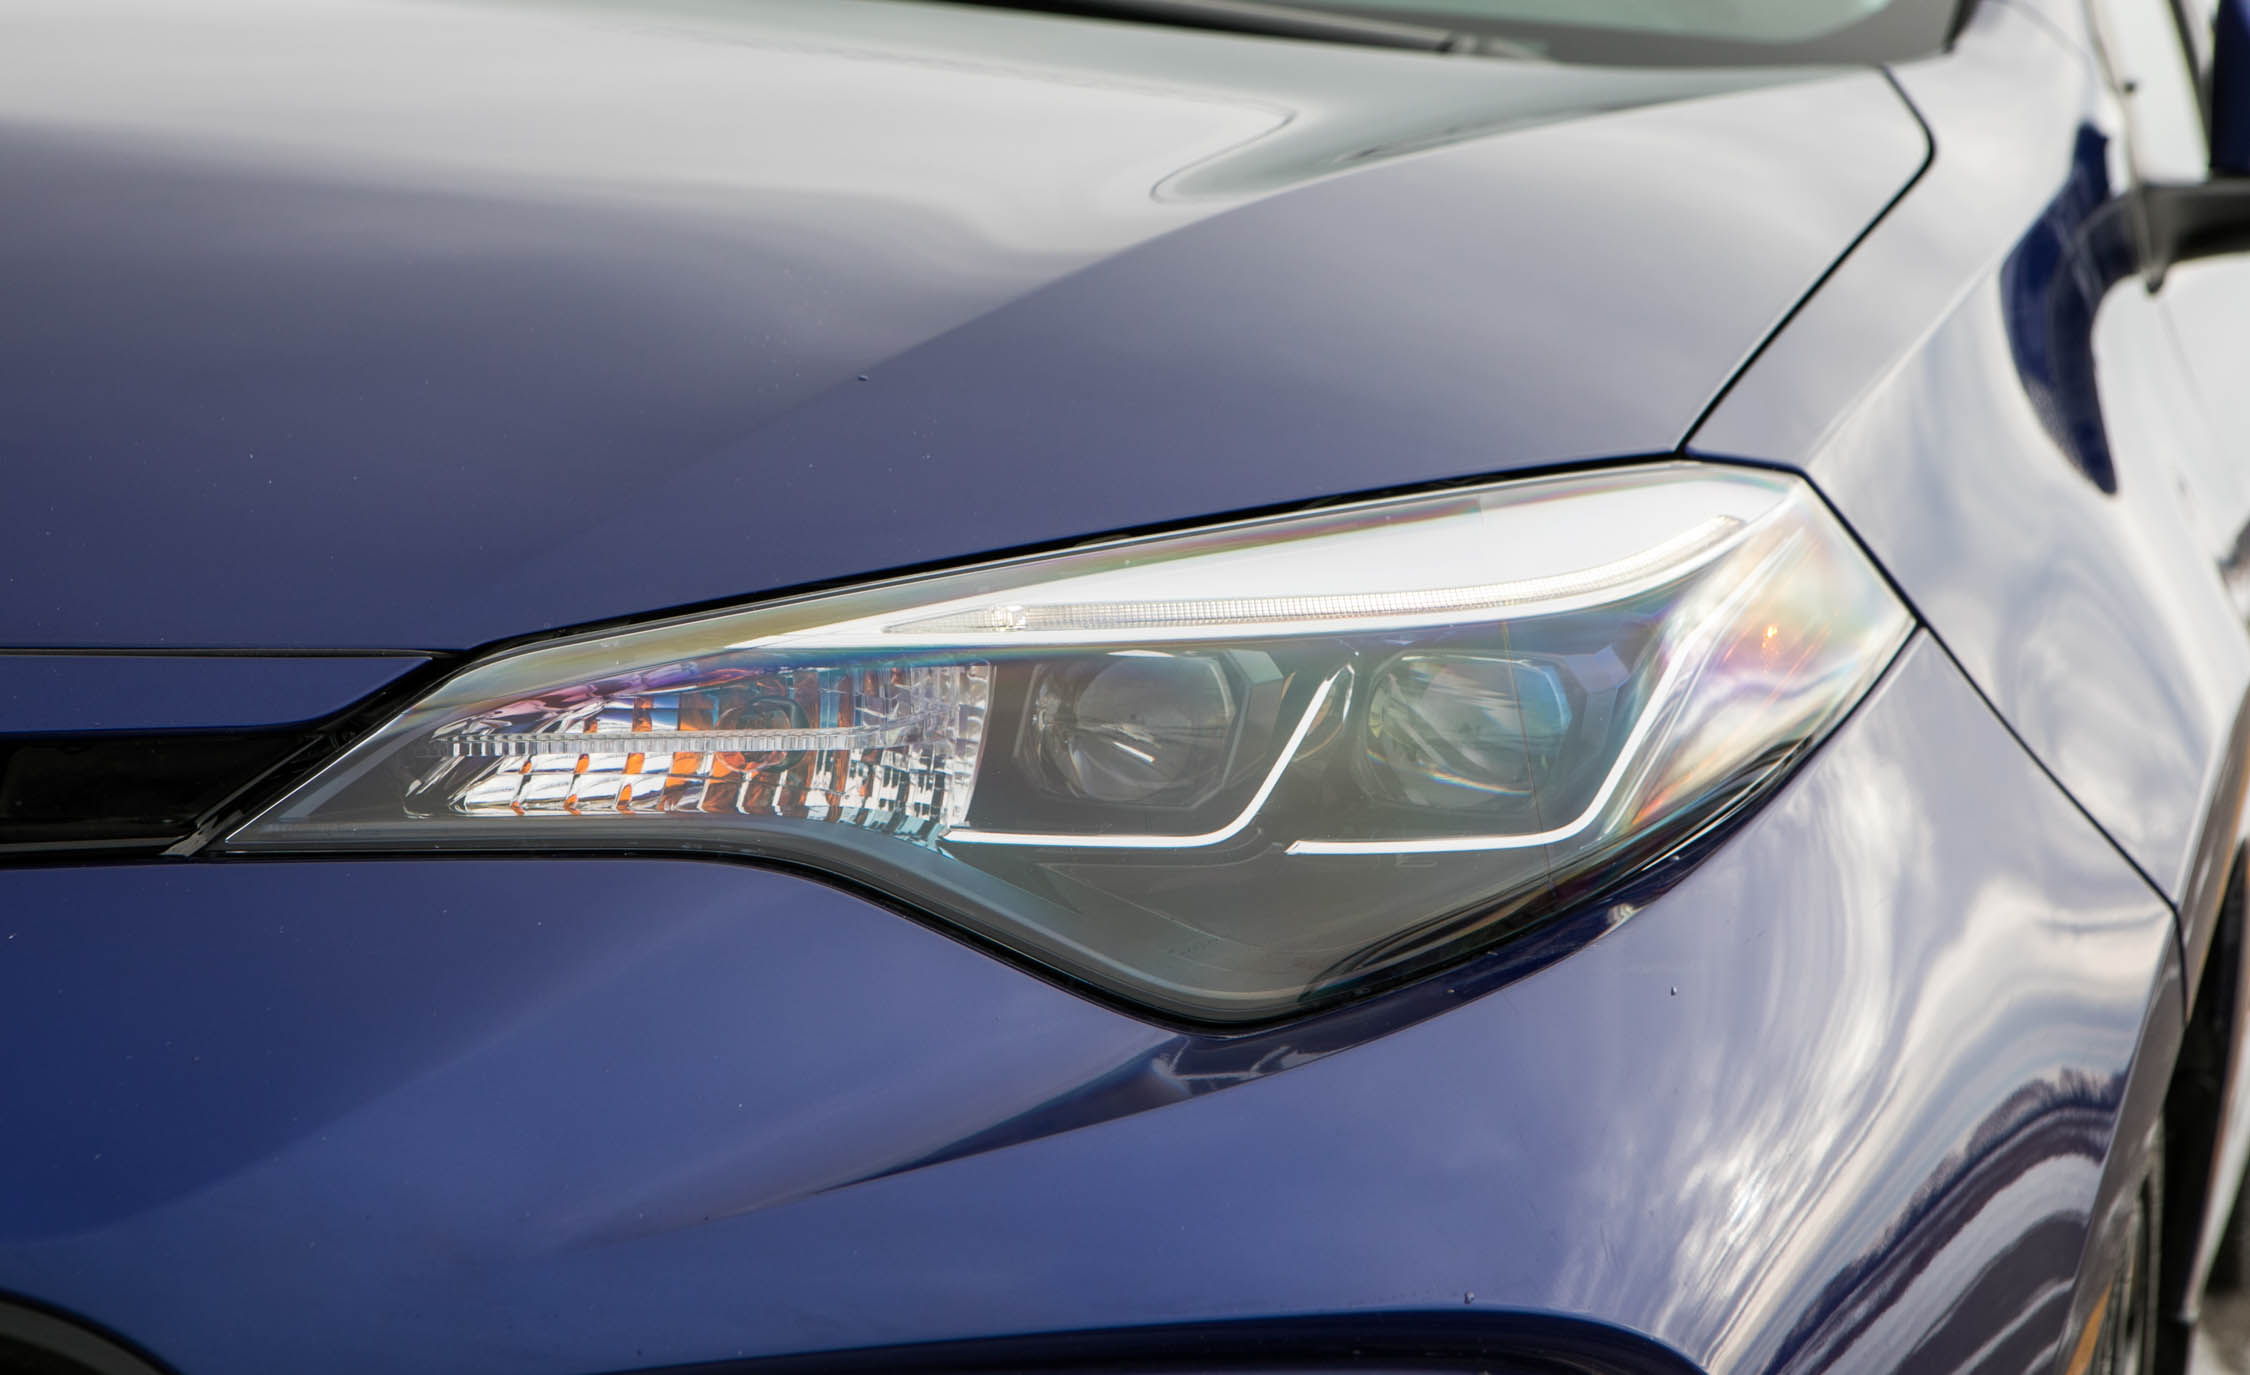 2017 Toyota Corolla XSE Exterior View Headlight (View 65 of 75)